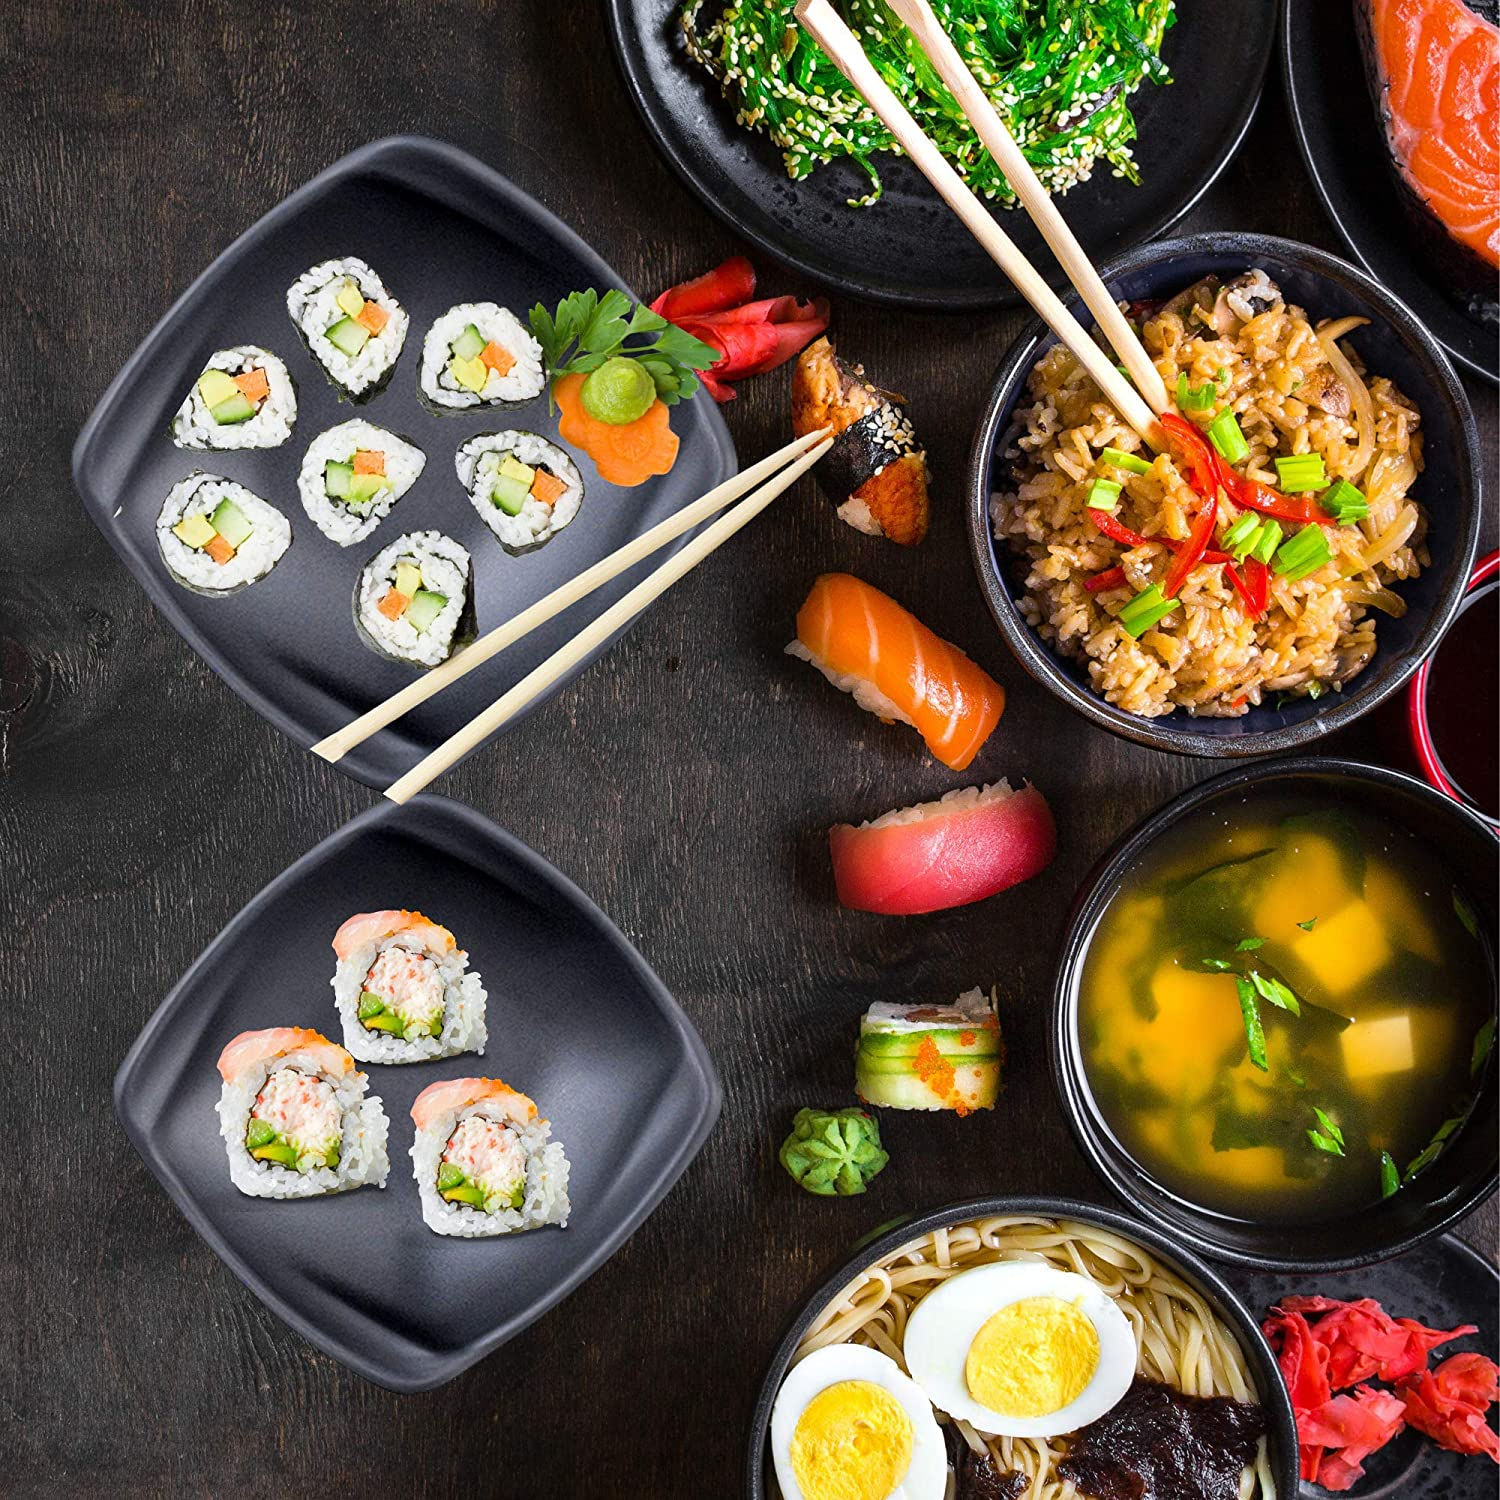 Appetizer 6.25 X 1.75 Inches Black Melamine Bowl Set of 4 Asian Cuisine Dinnerware Small Square Dish for Salad